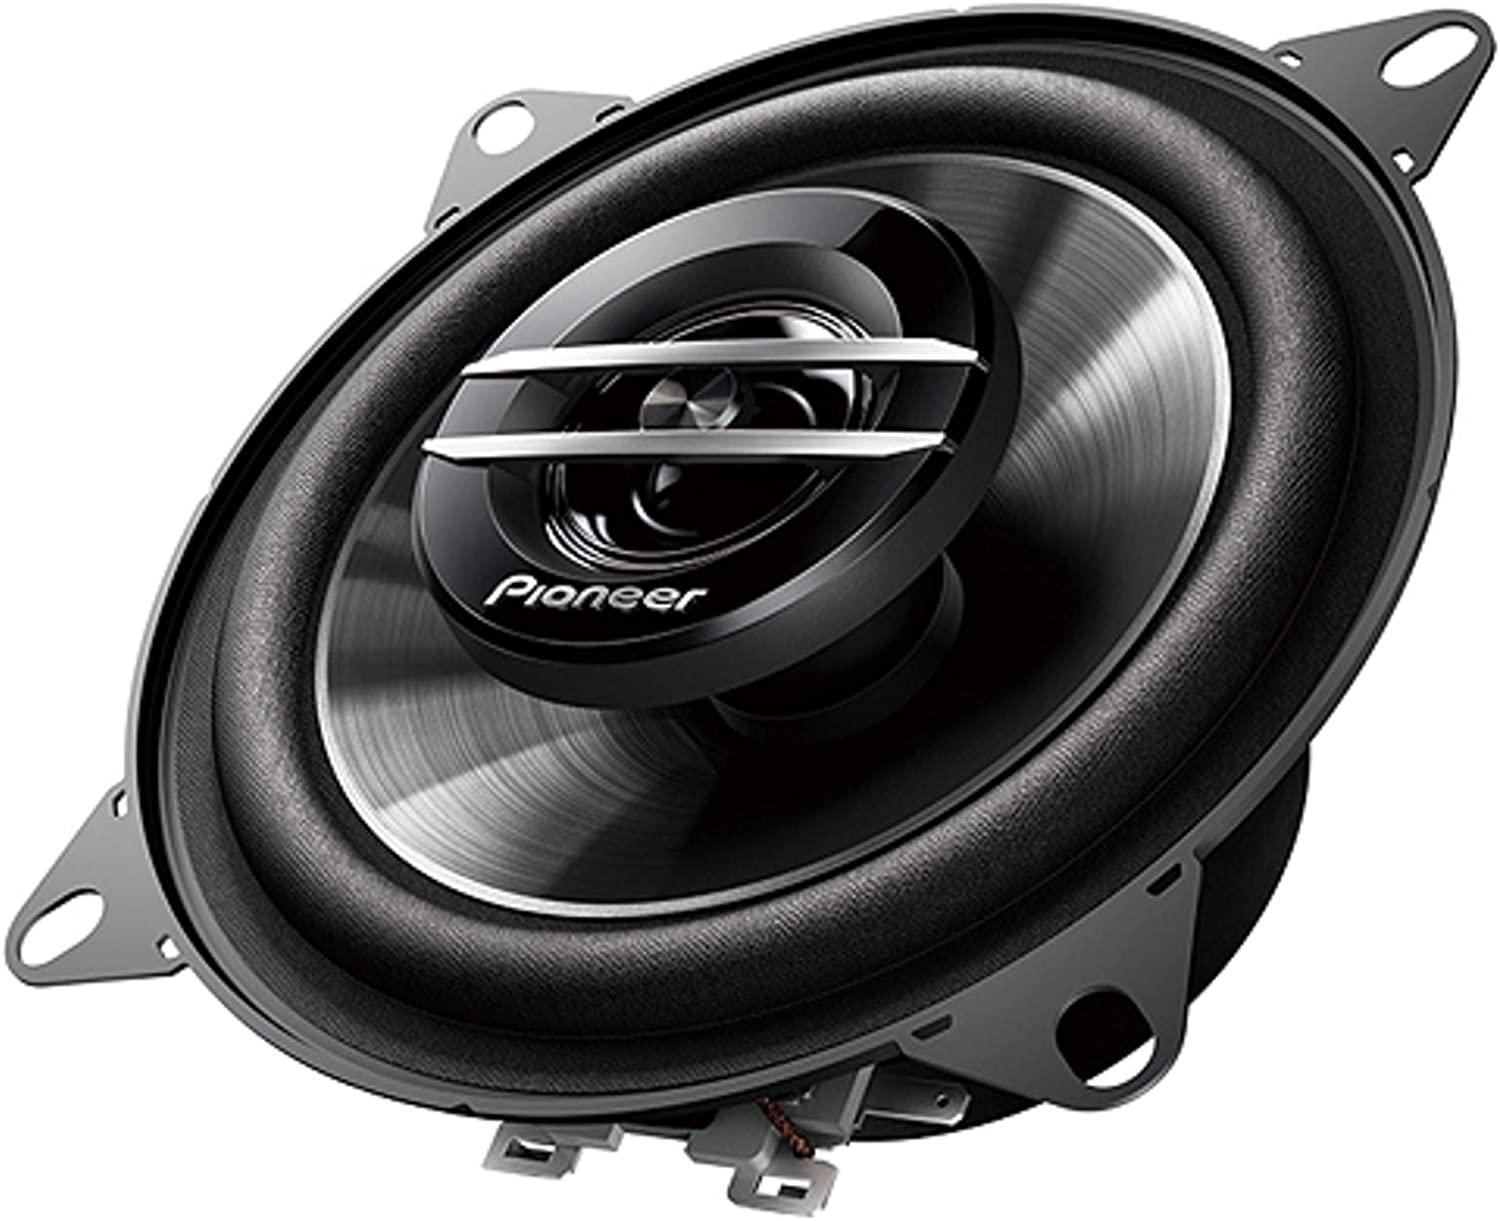 Pioneer TS-G1020S 420 Watts Max Power 4 2-Way G-Series Coaxial Full Range Car Audio Stereo Speakers with ALPHASONIK Earbuds